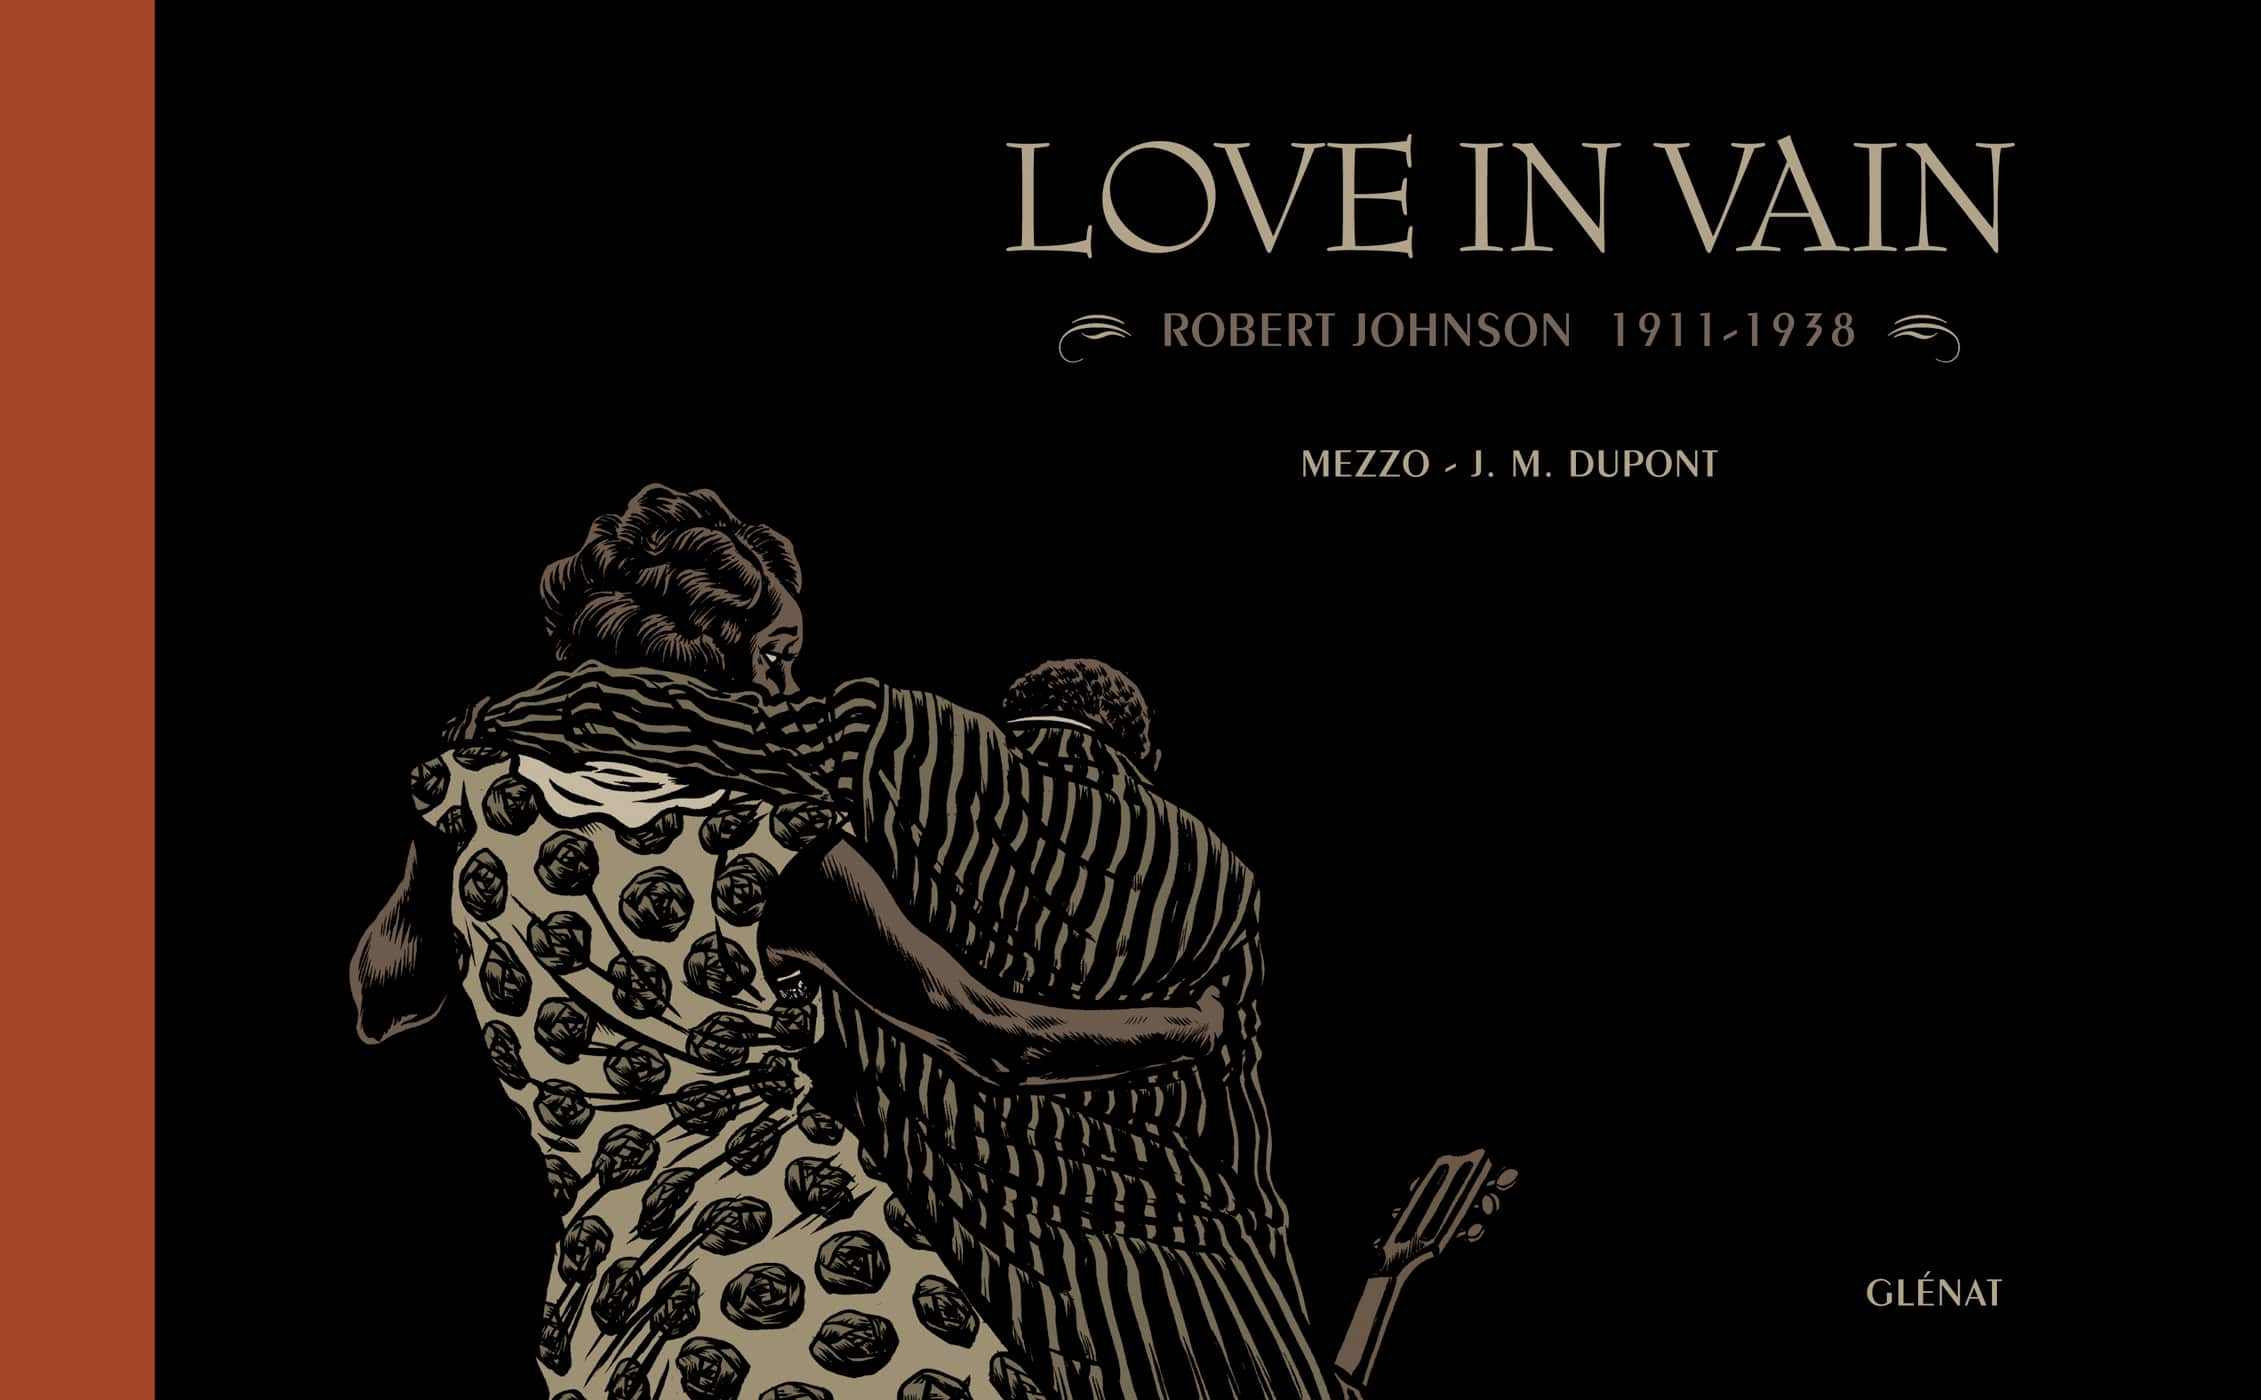 Love in Vain, le génie du guitariste Robert Johnson